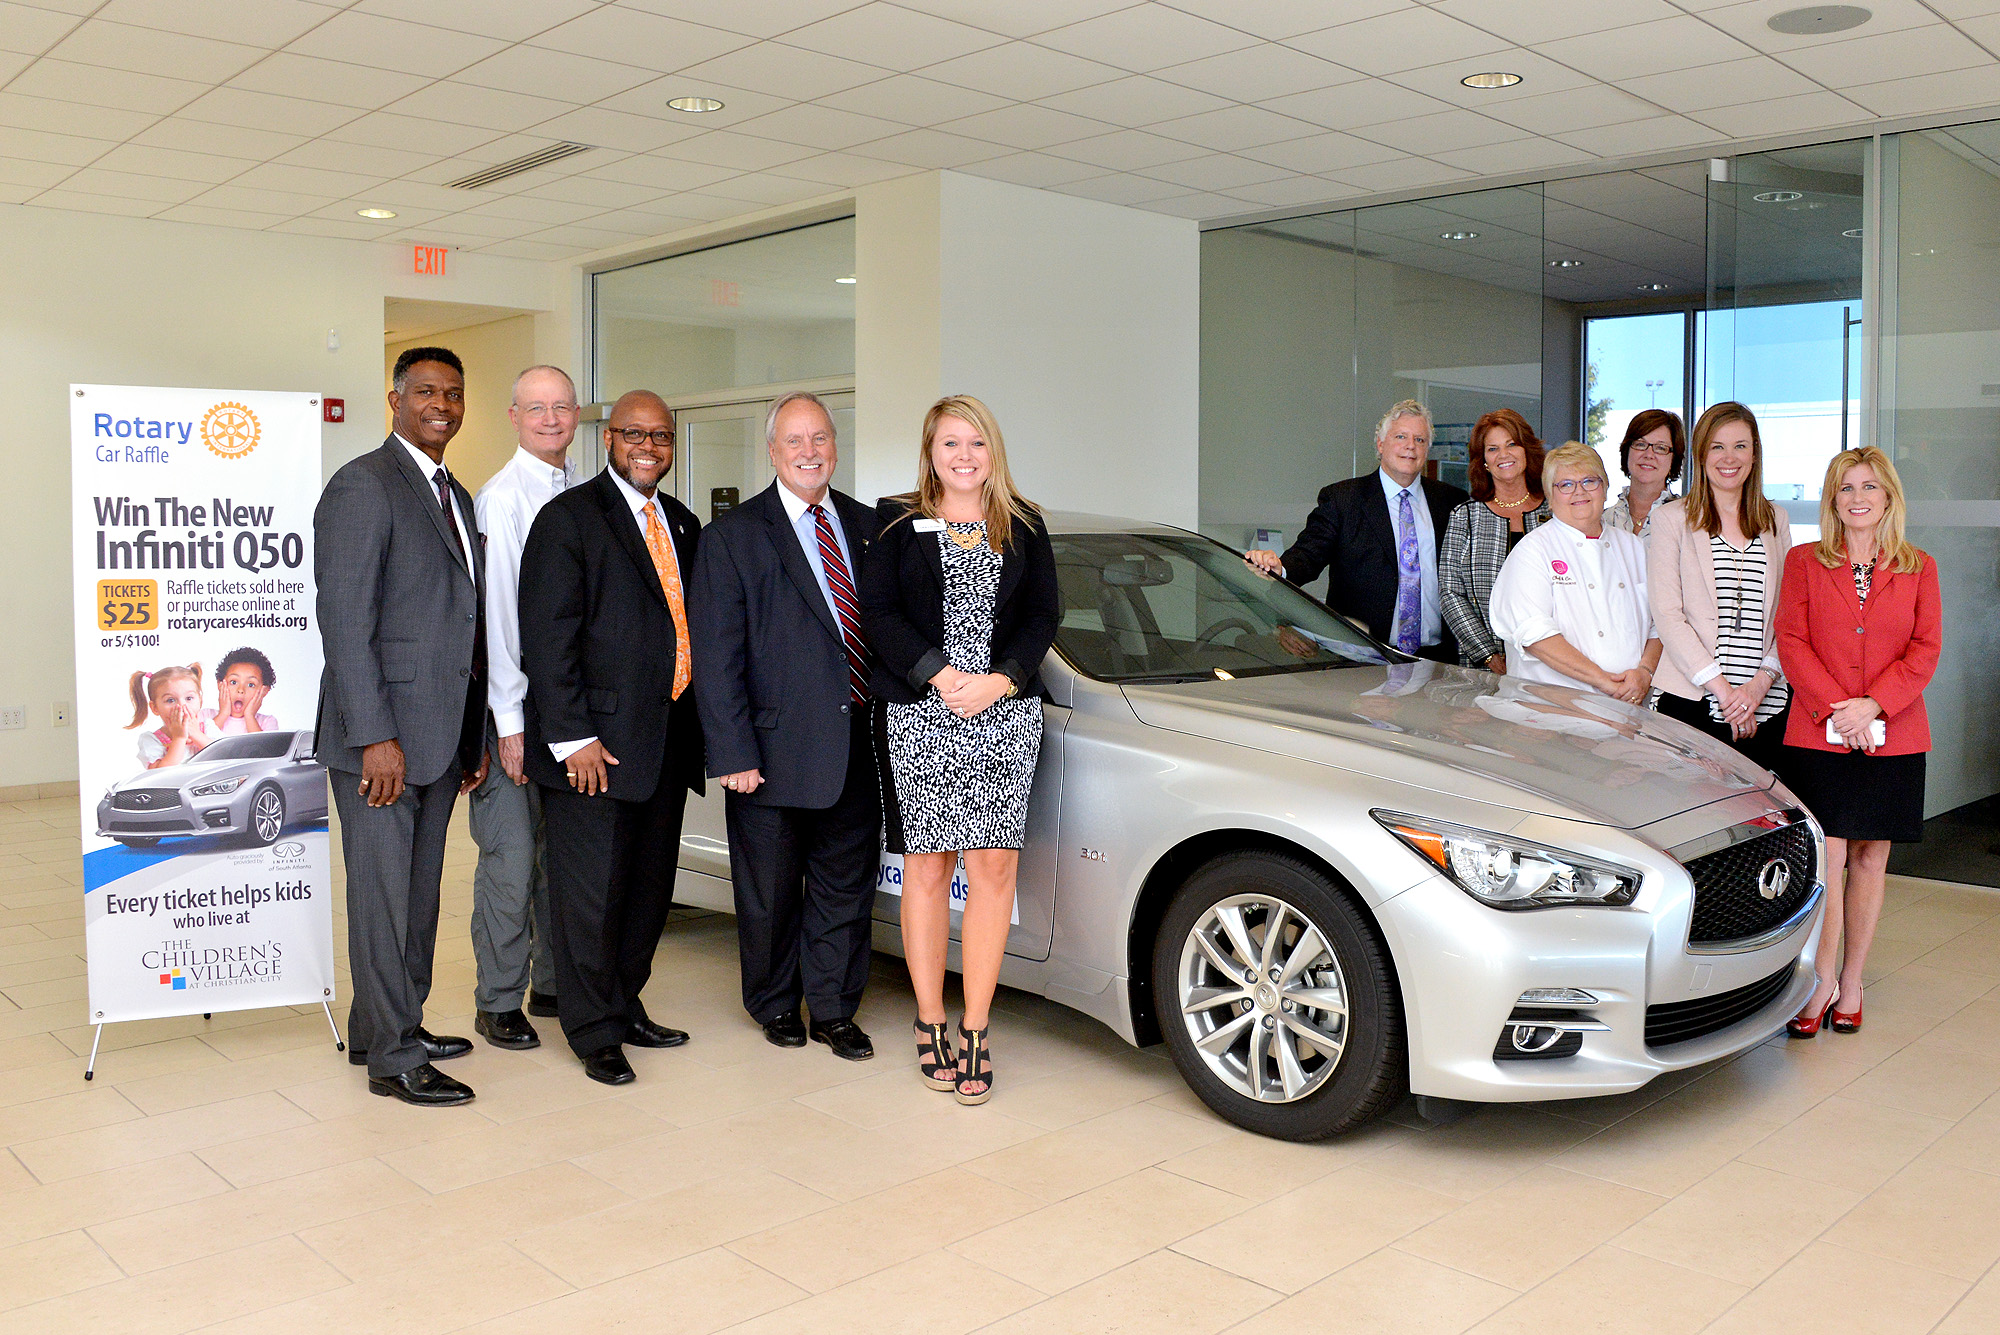 south side rotary clubs to raffle new infiniti car christian city